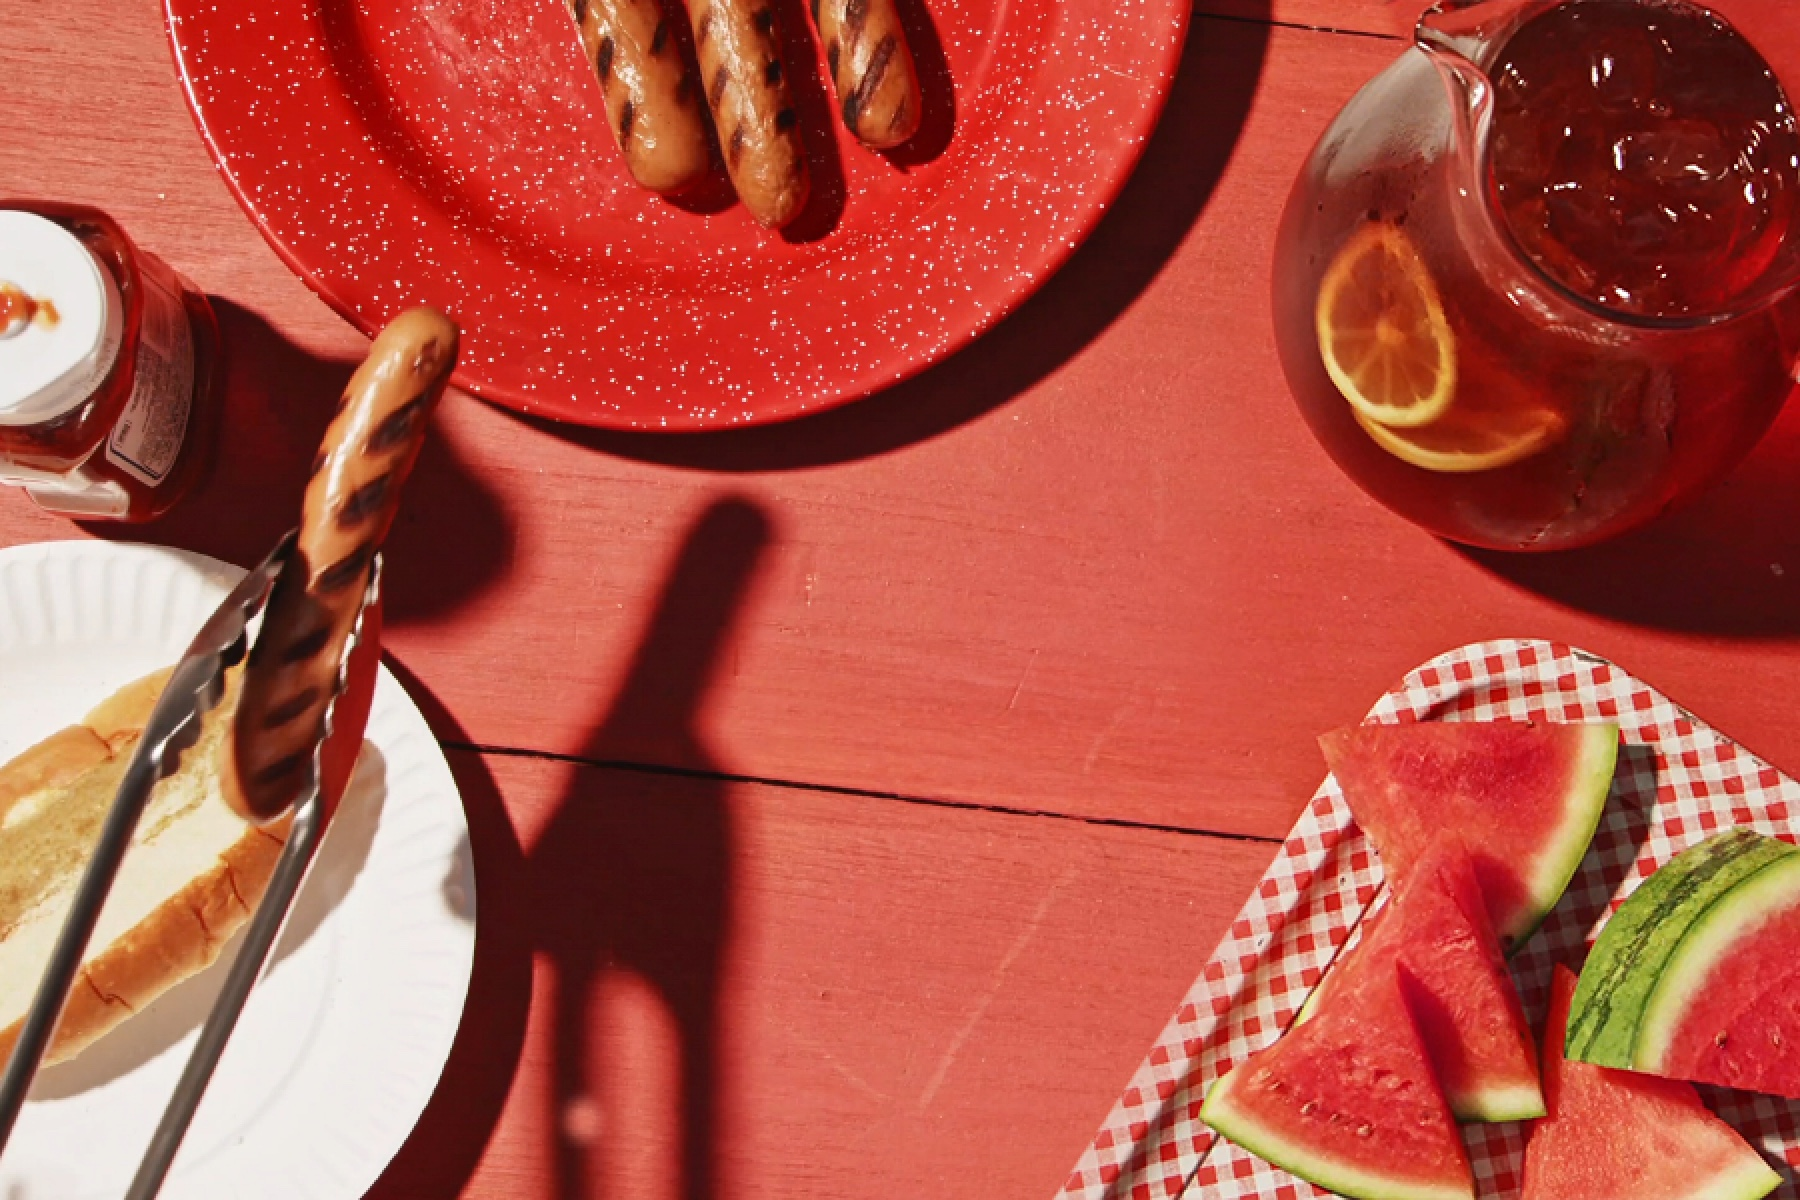 4th of July party ideas to make the holiday sparkle